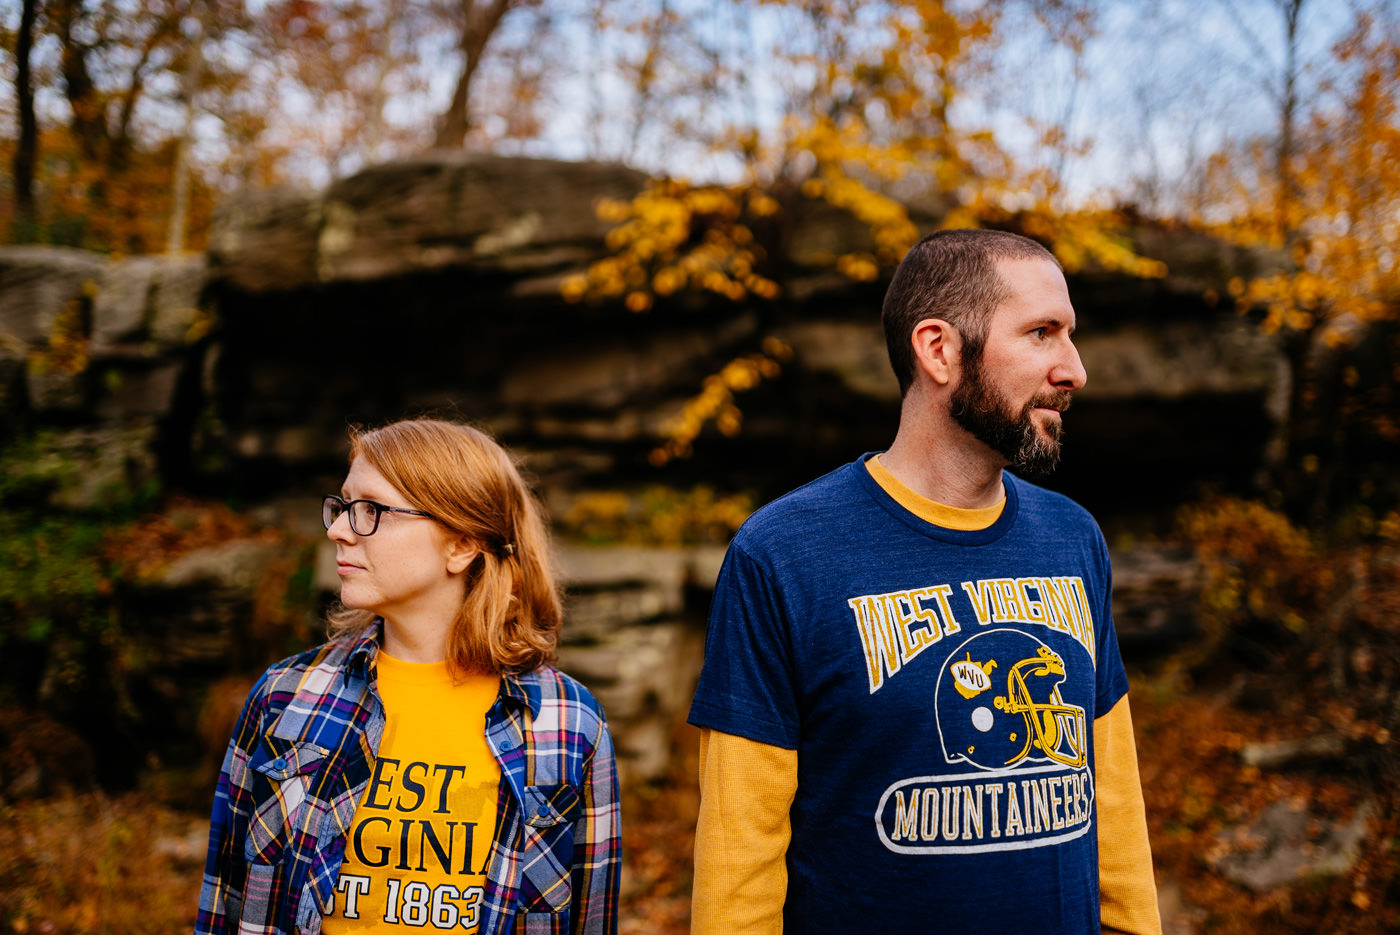 engagement session featuring wvu apparel